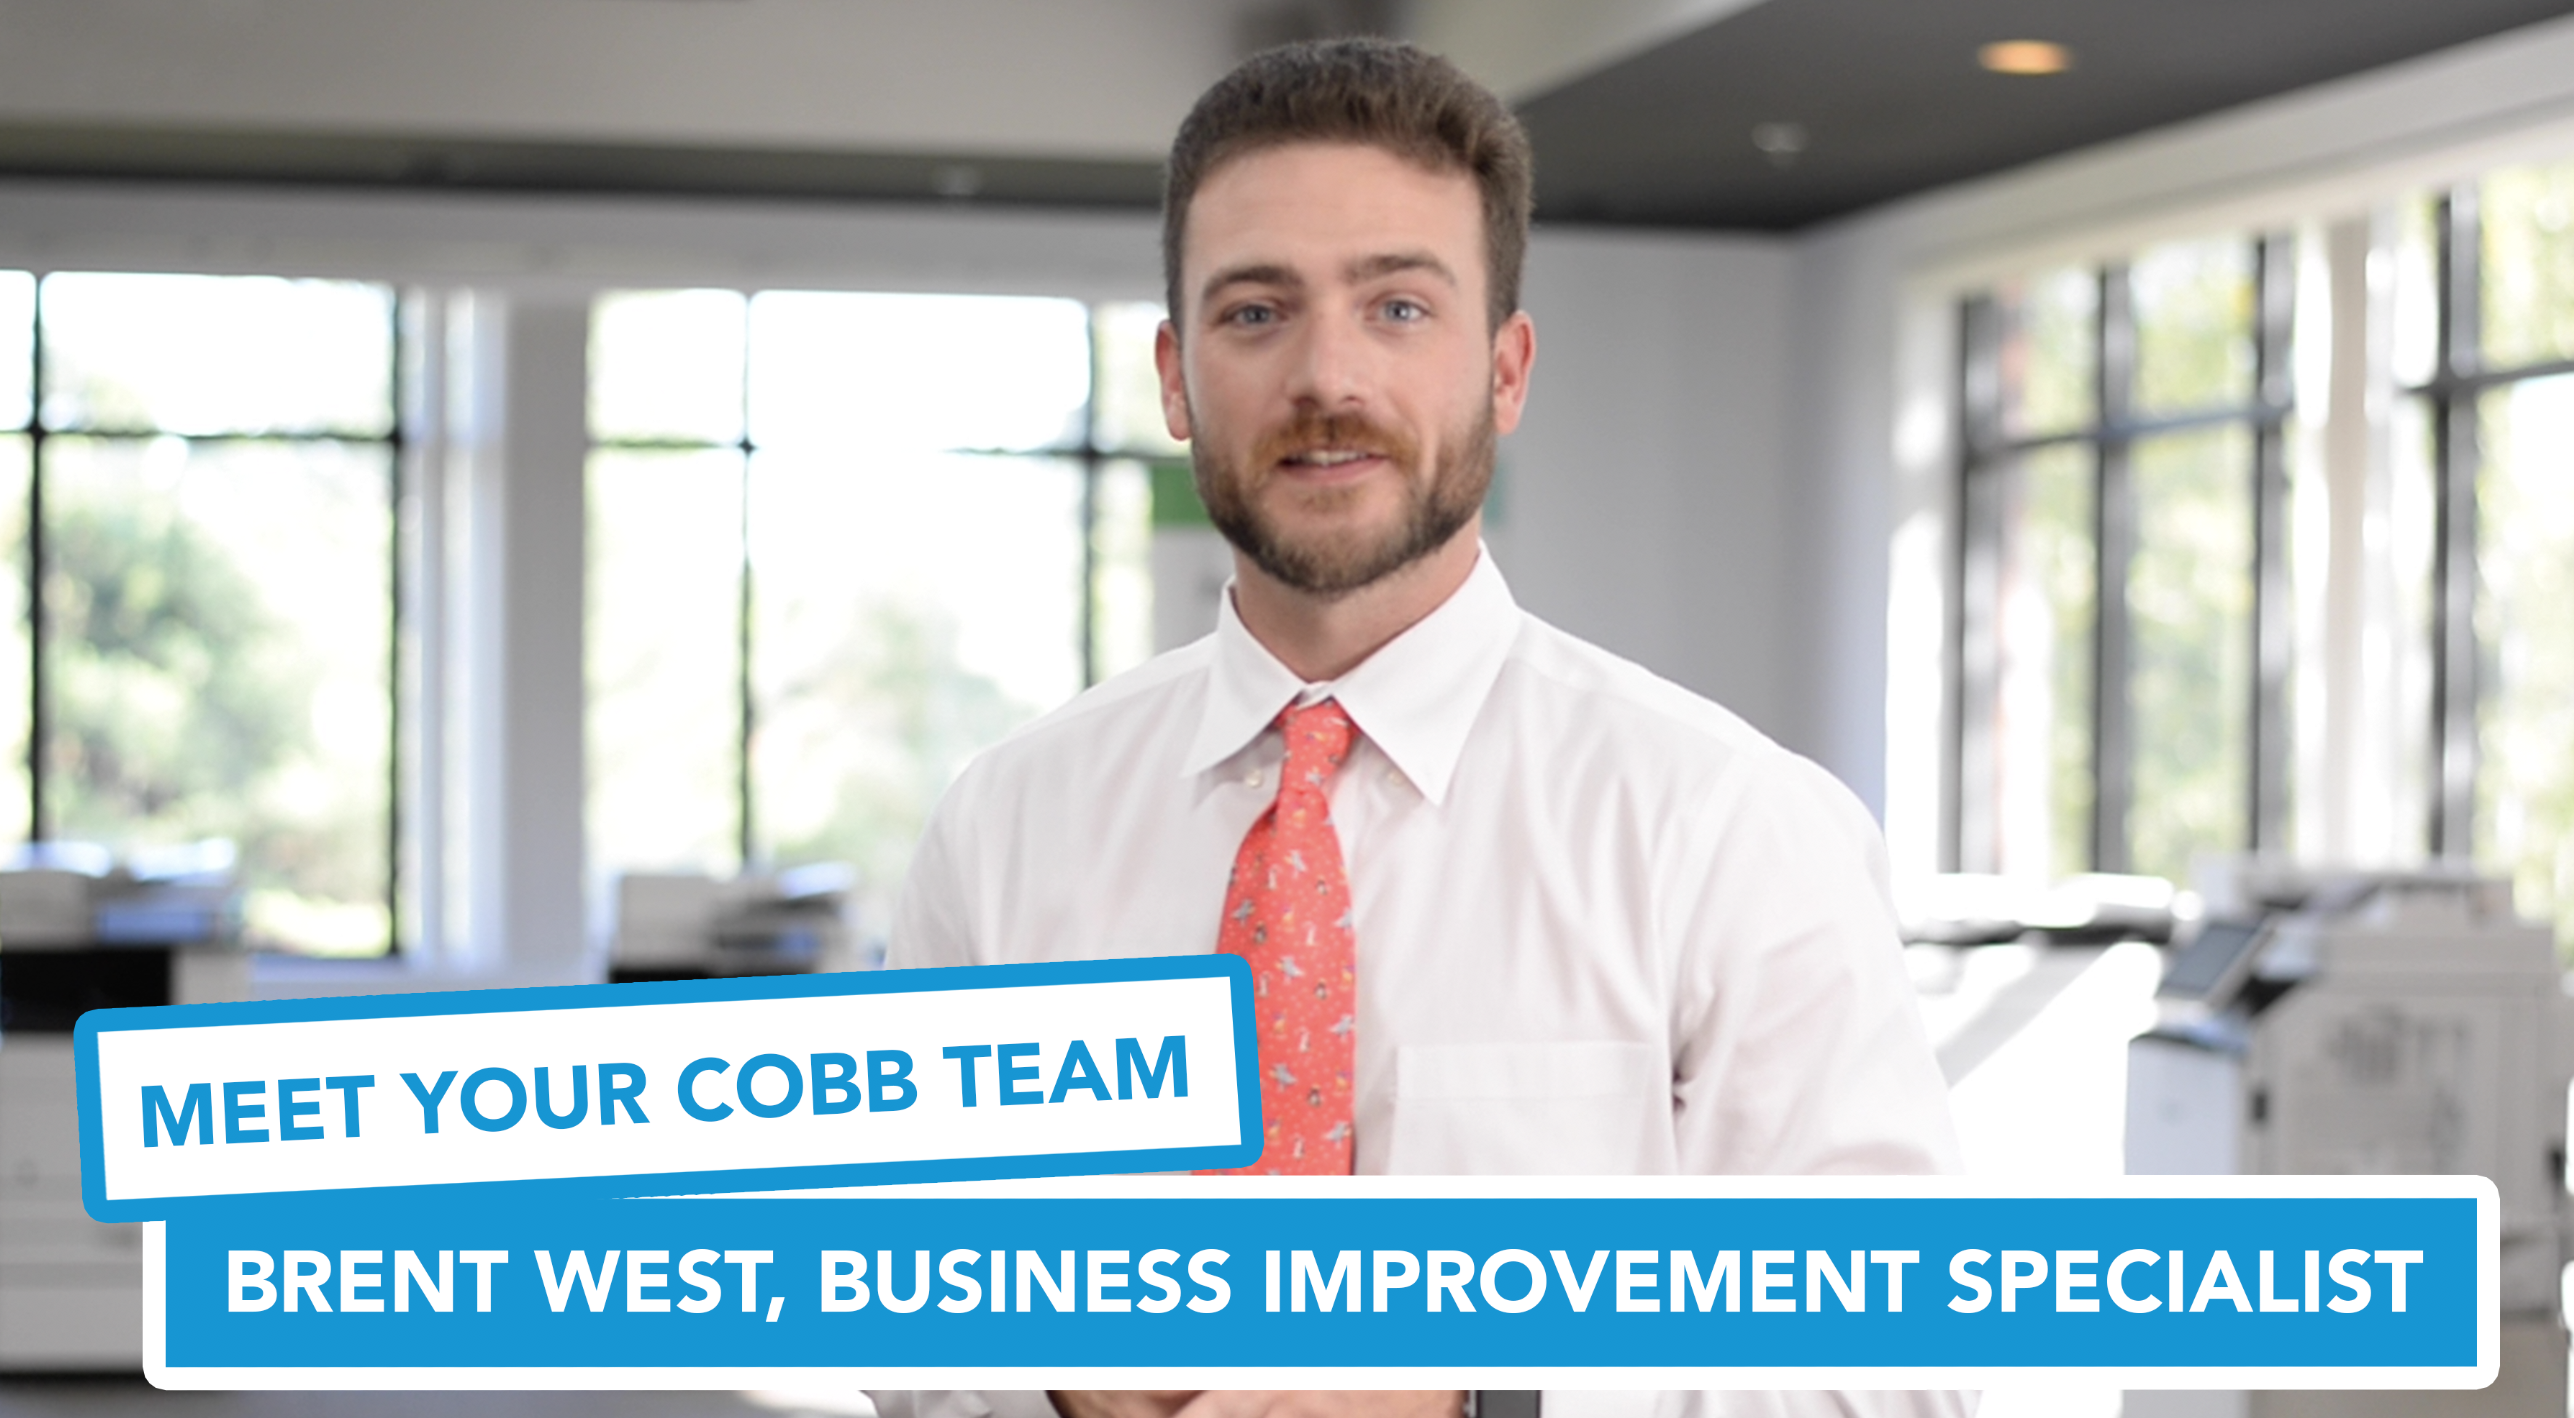 Meet Your Cobb Team: Brent West, Business Improvement Specialist